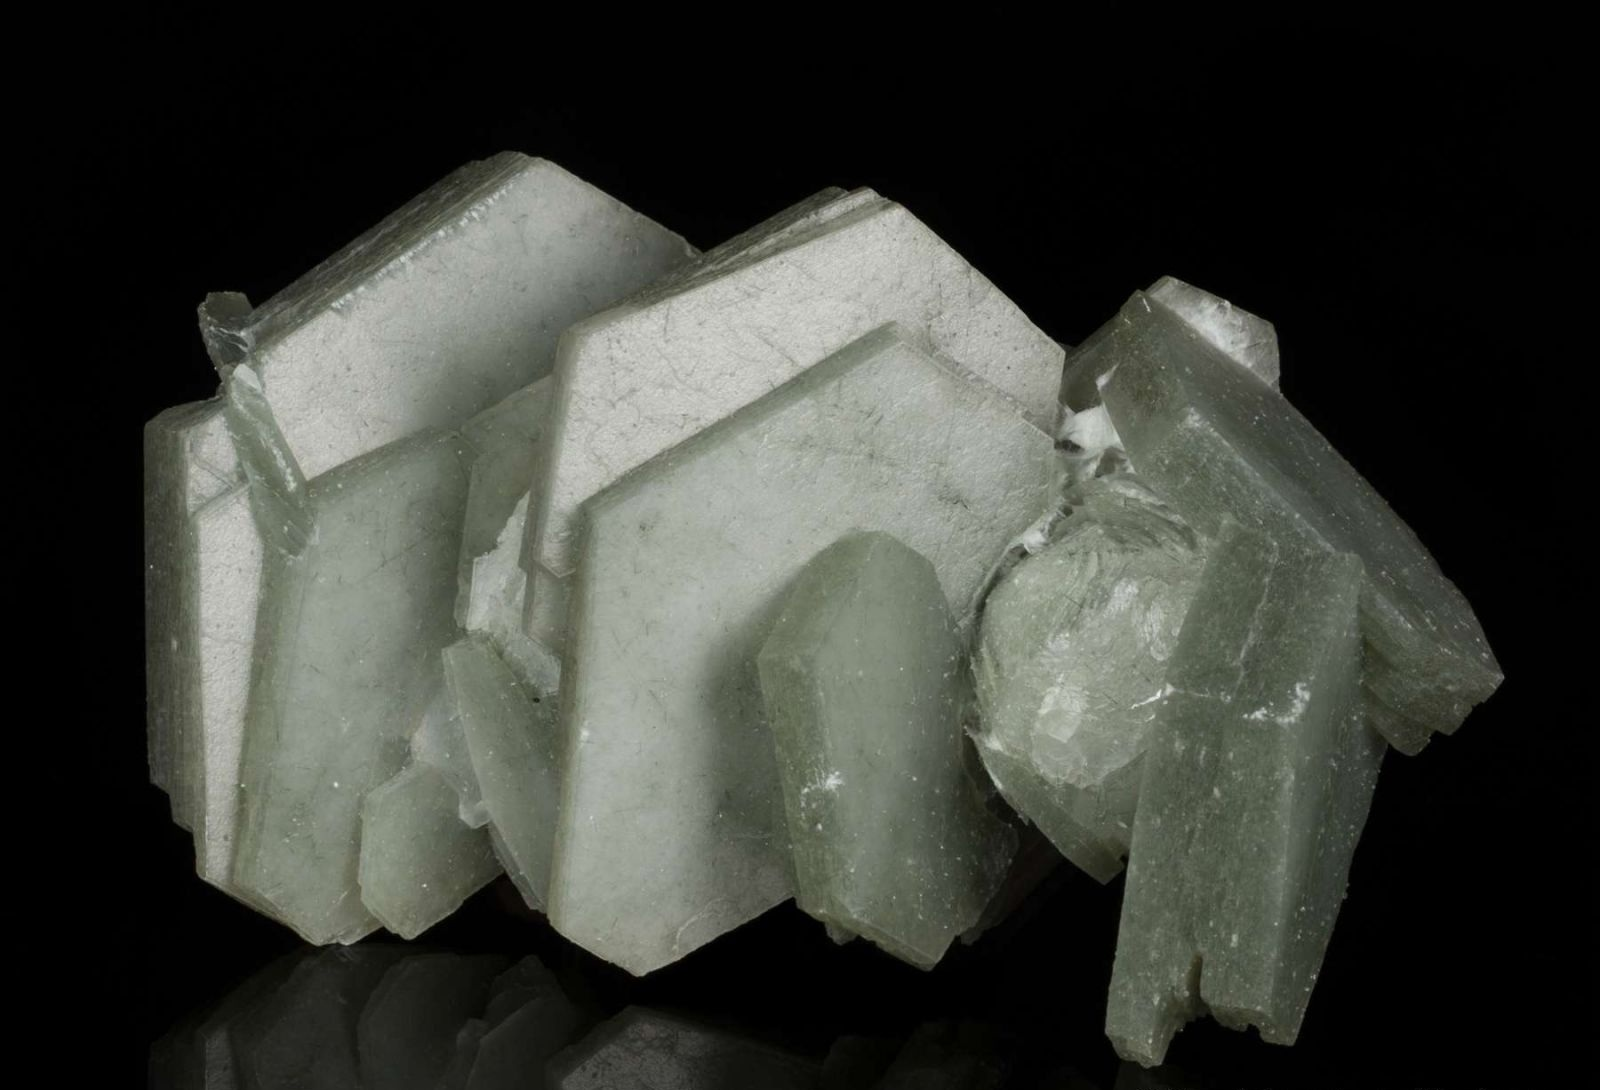 Huanggang Mines, Hexigten Banner, Inner Mongolia A.R. China. This is an inter-grown cluster of  doubly terminated, tabular crystals